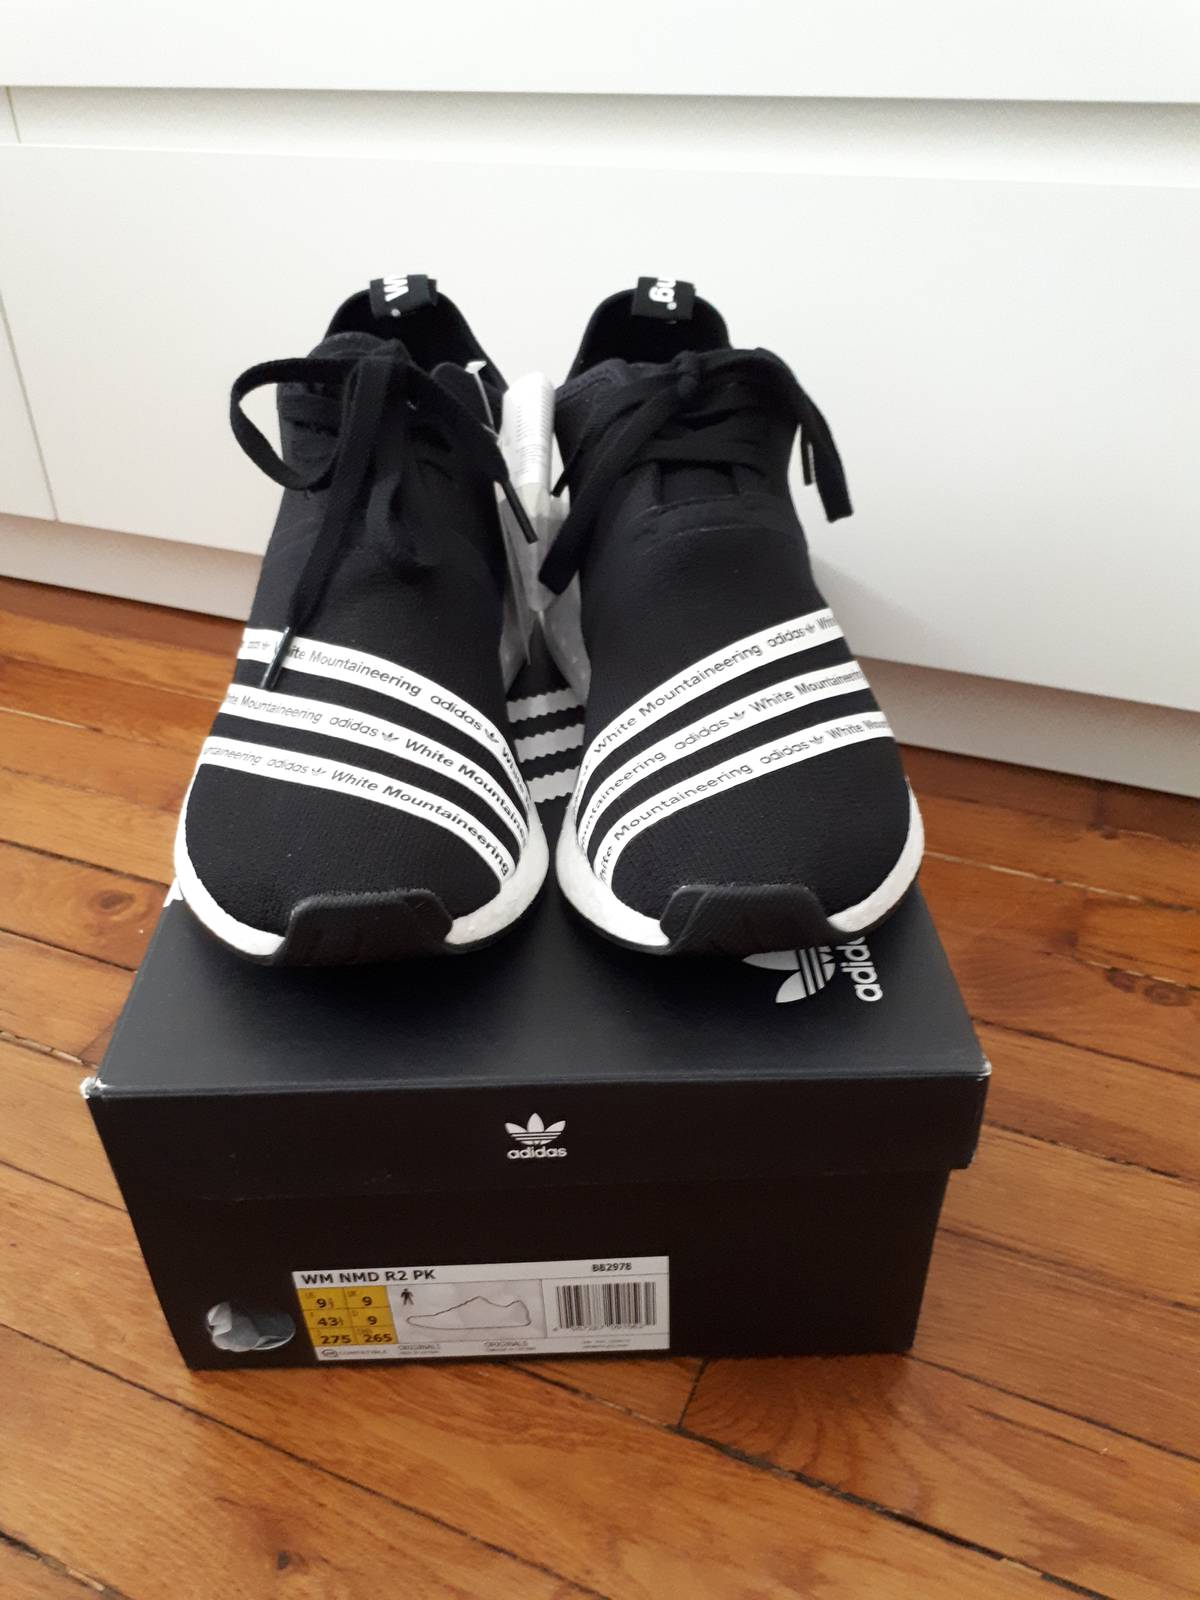 SALE Adidas NMD R2 PK Core Red White Black BB2910 Primeknit